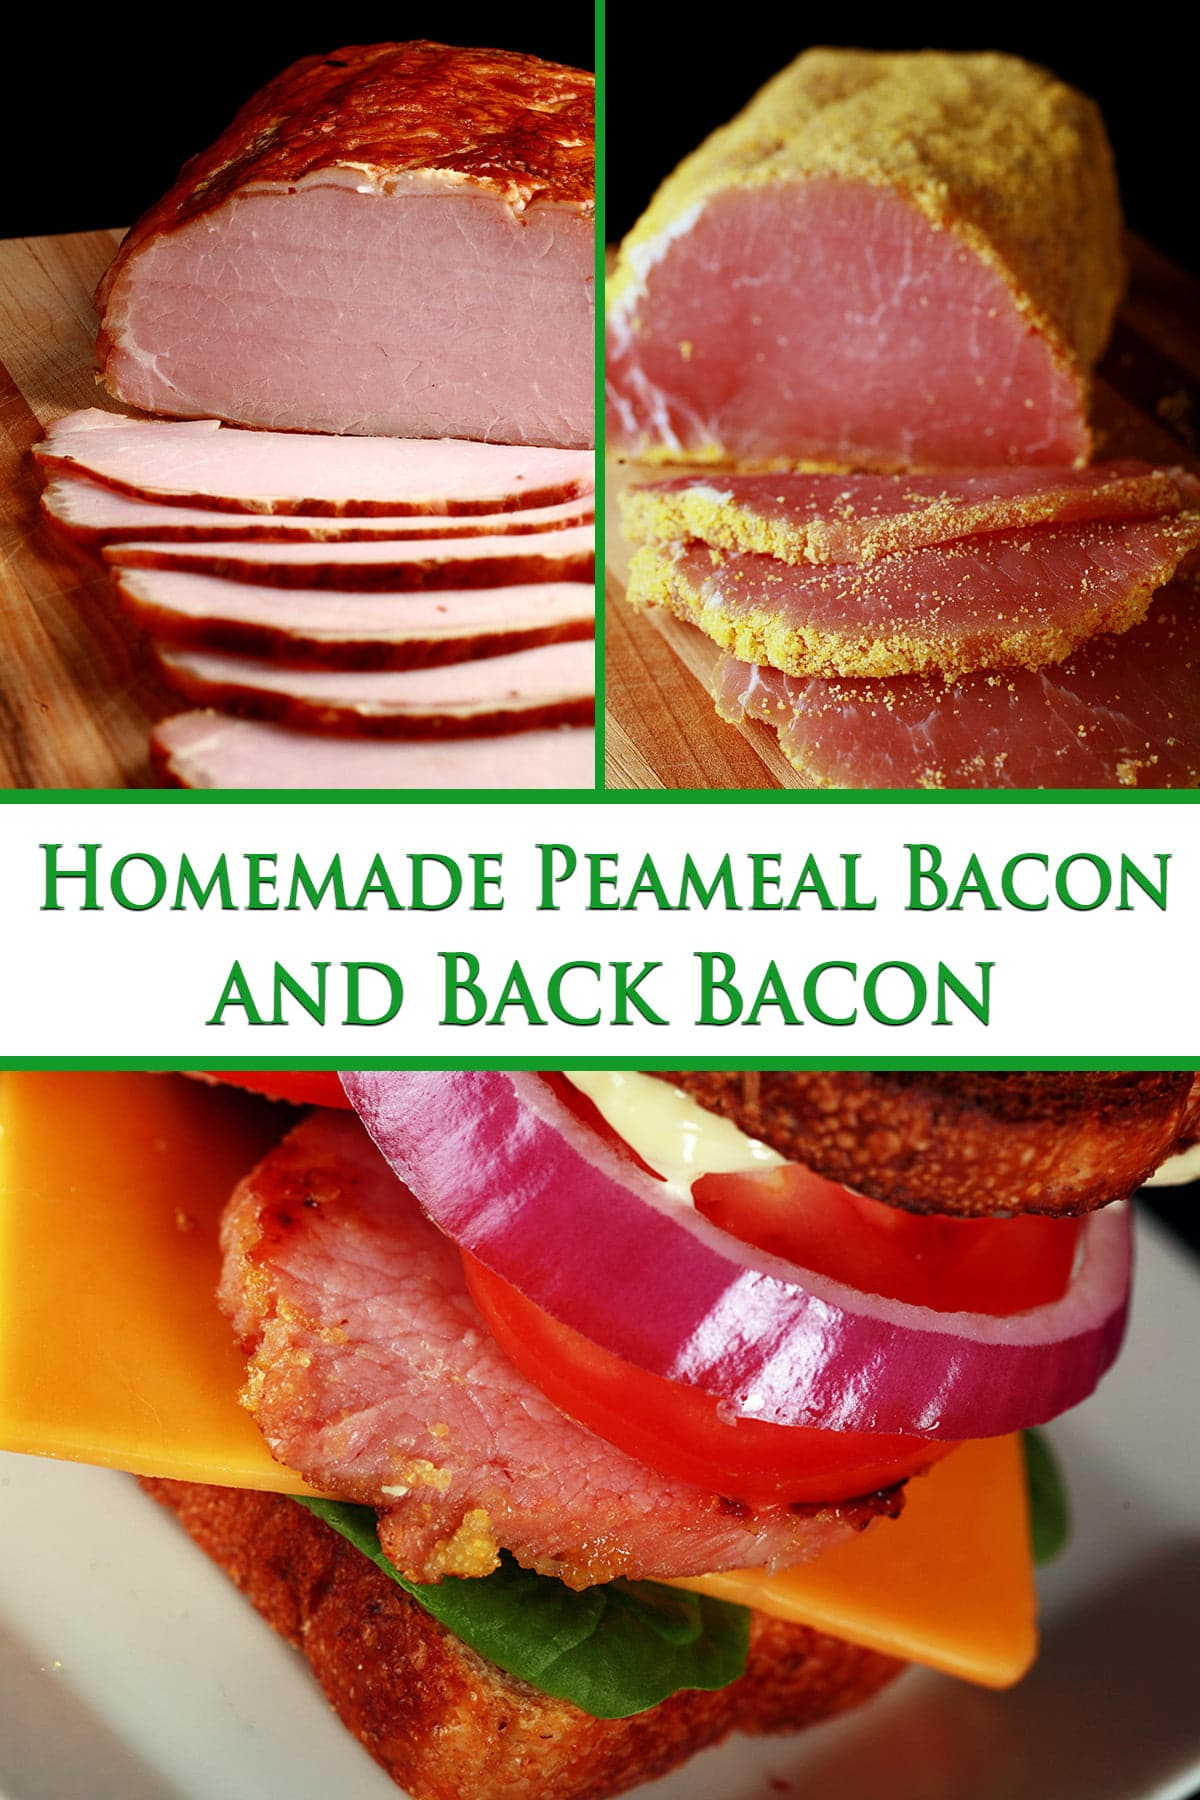 Pinterest image for homemade pea meal and back bacon. A collage of images showing peameal bacon, back bacon, and a bacon sandwich.